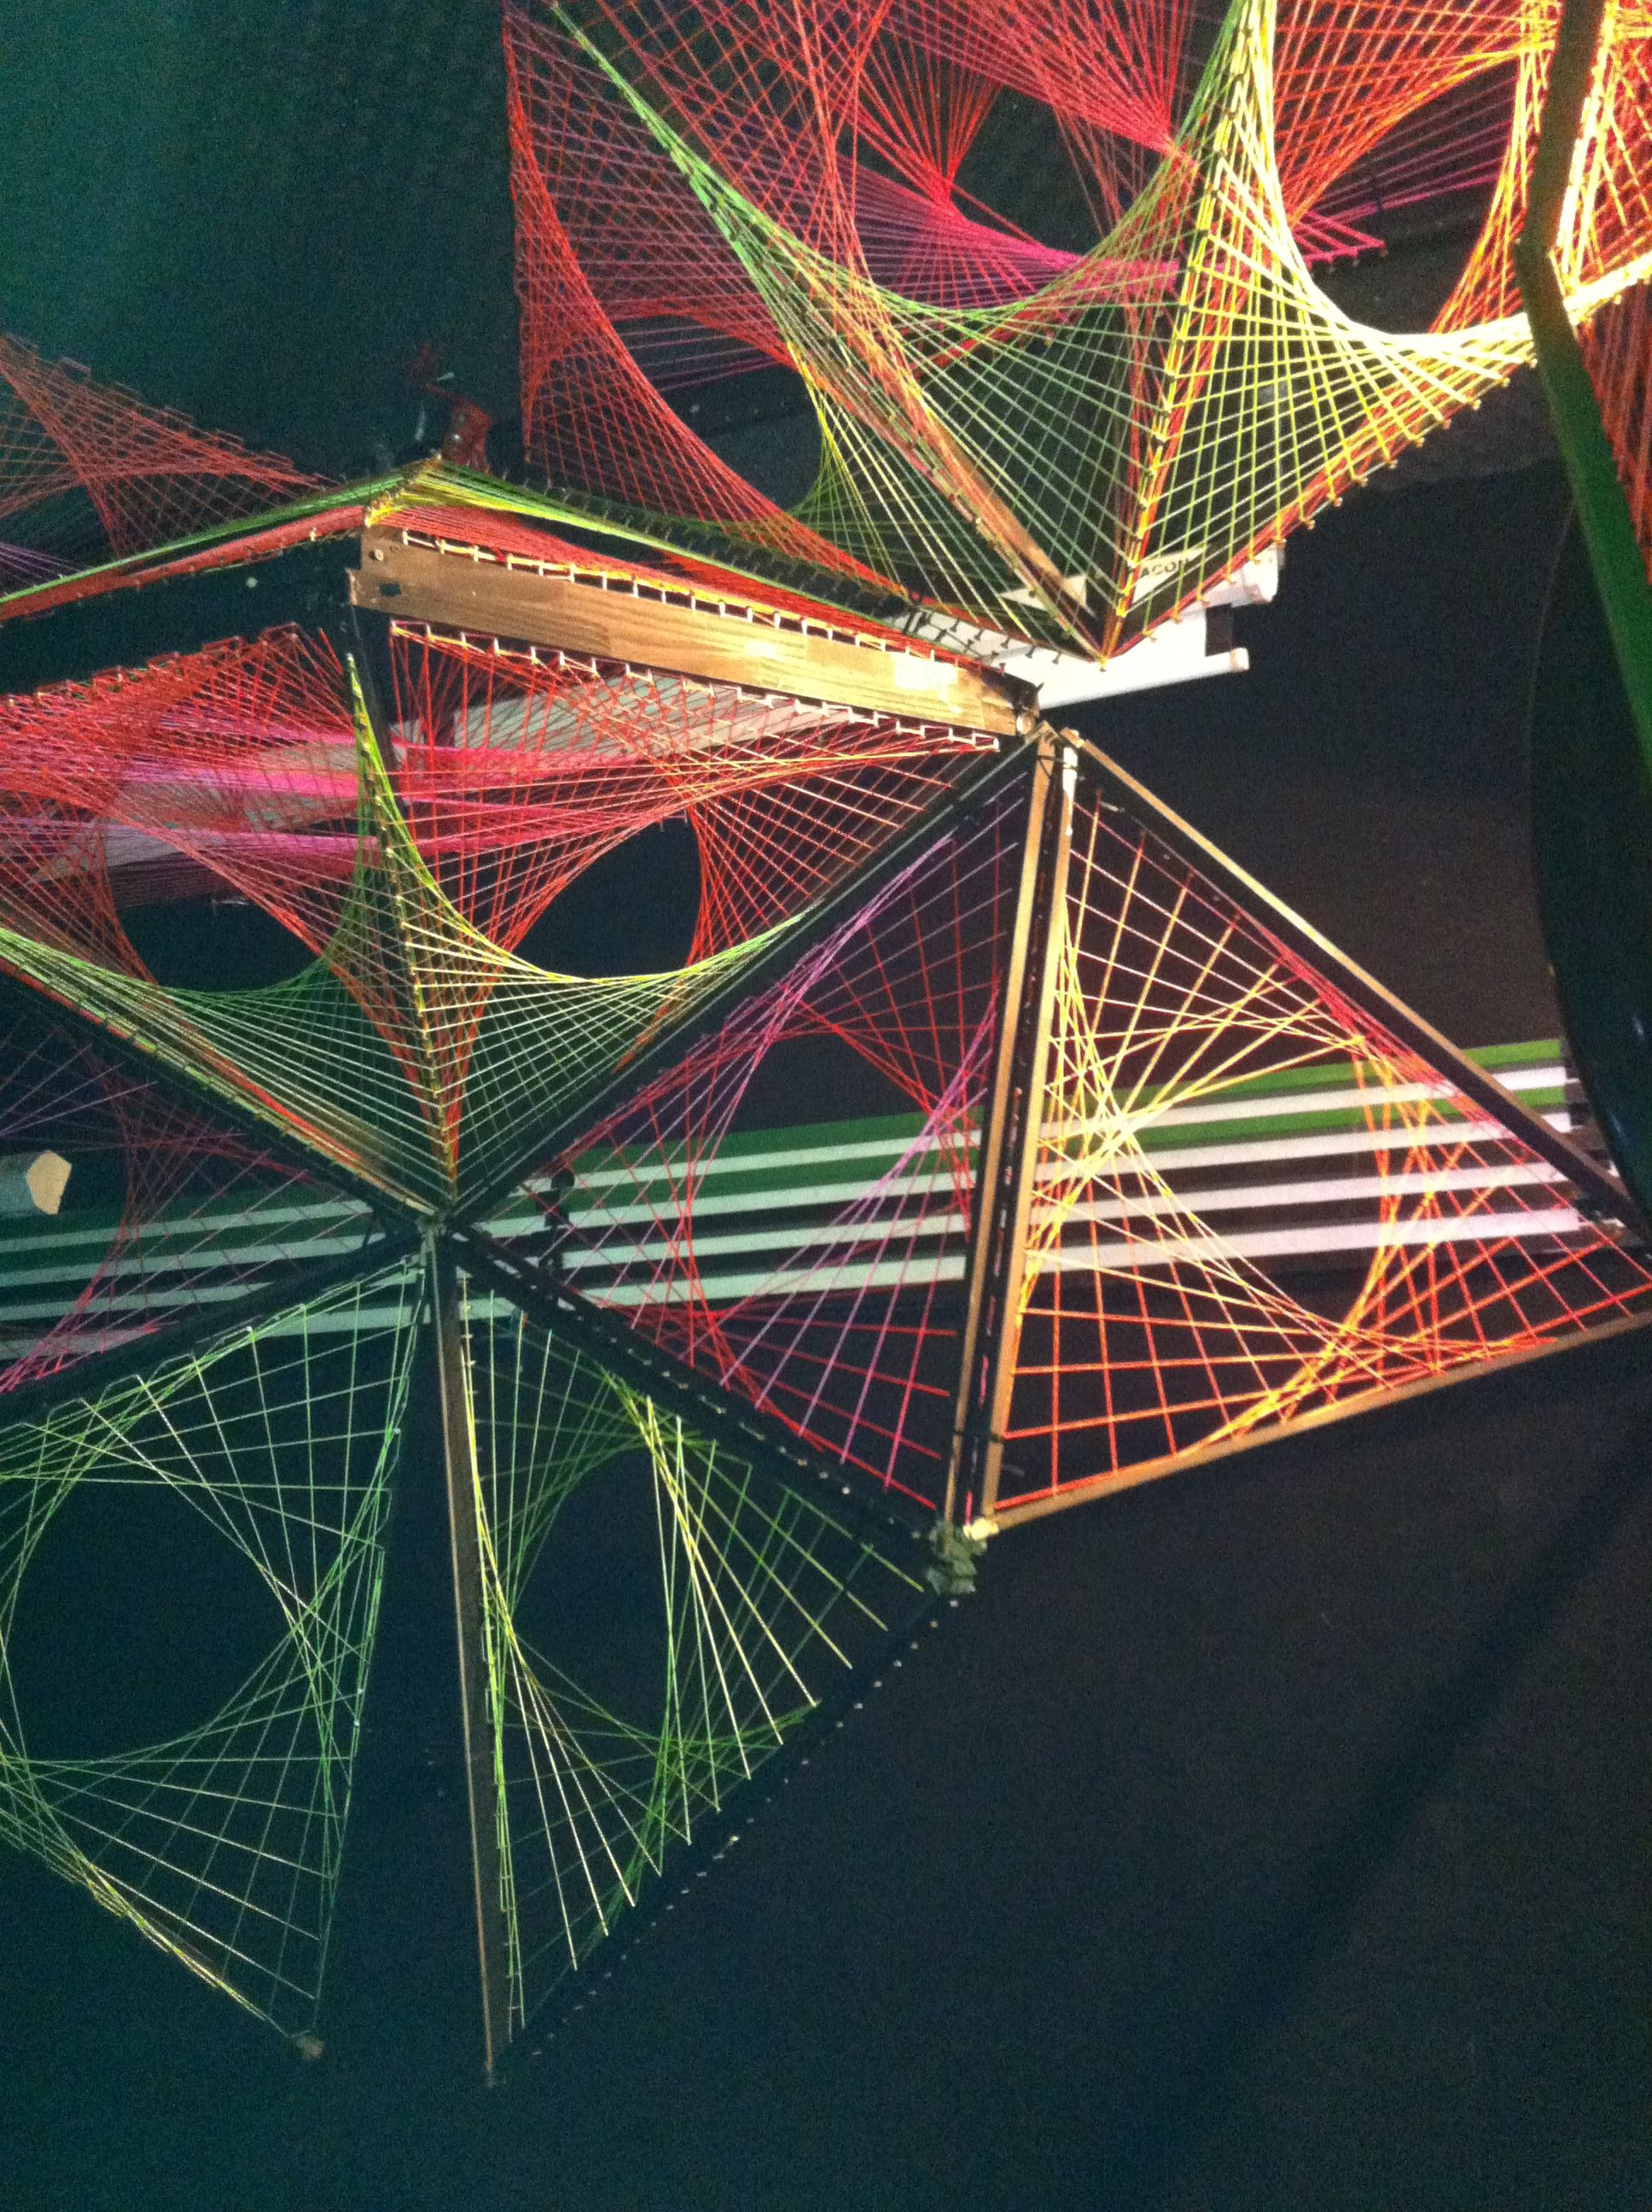 Amazing 3d String Art Designs For Trance Party Last June Craft